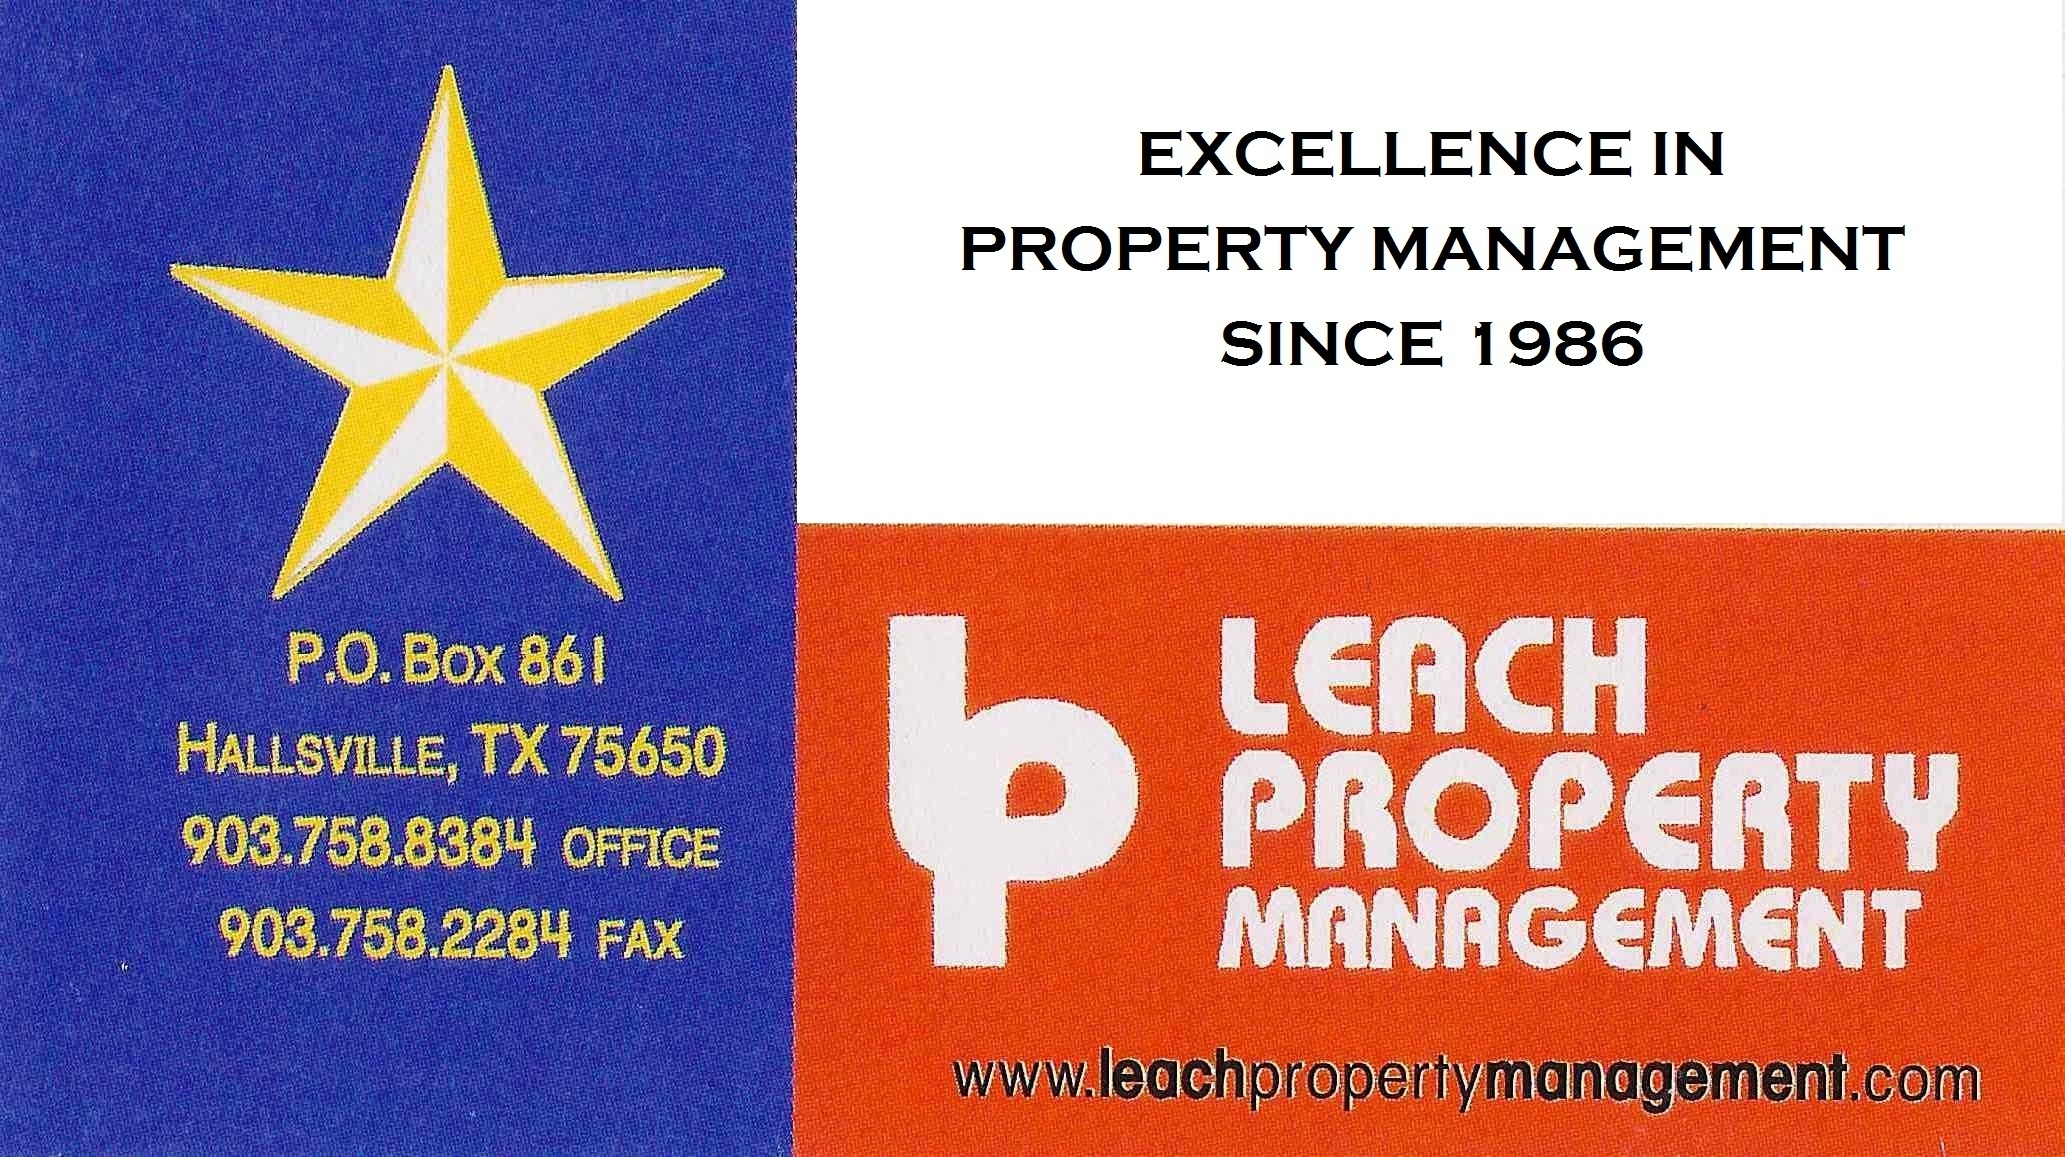 Leach Property Management